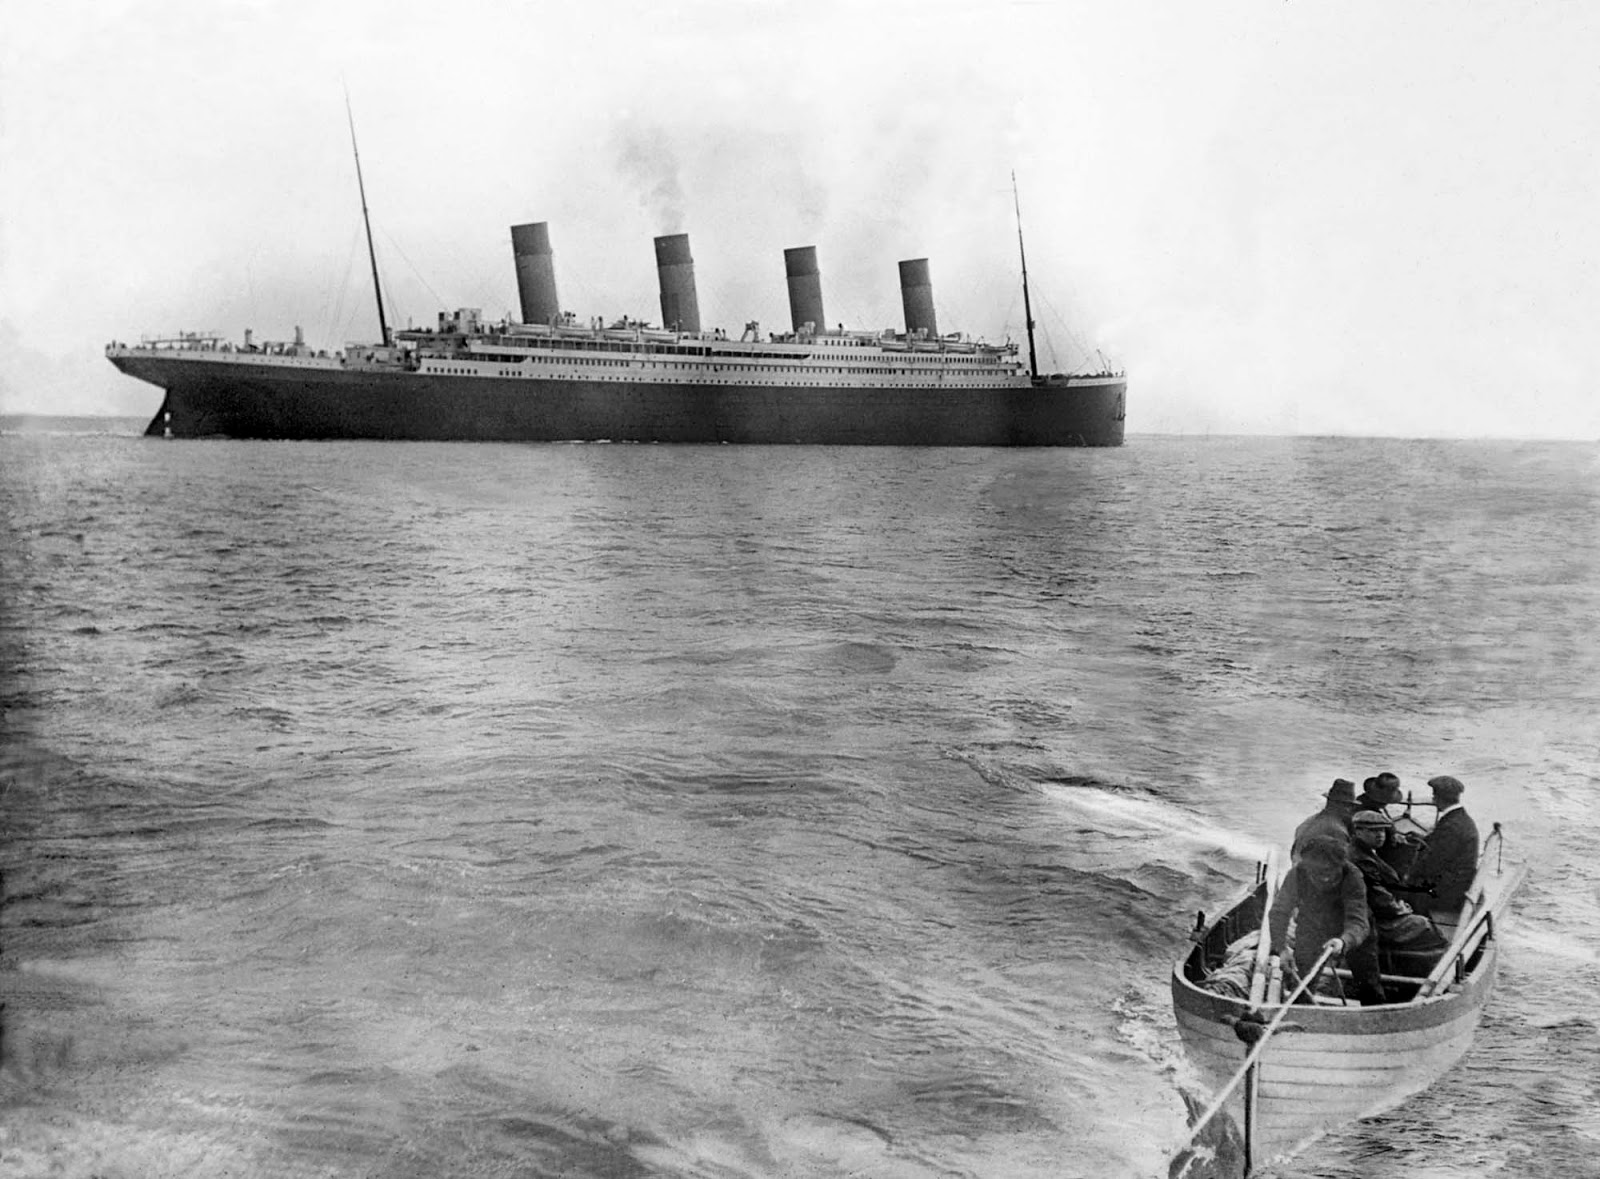 The last known photo of the Titanic afloat. Photo taken on April 12, 1912.